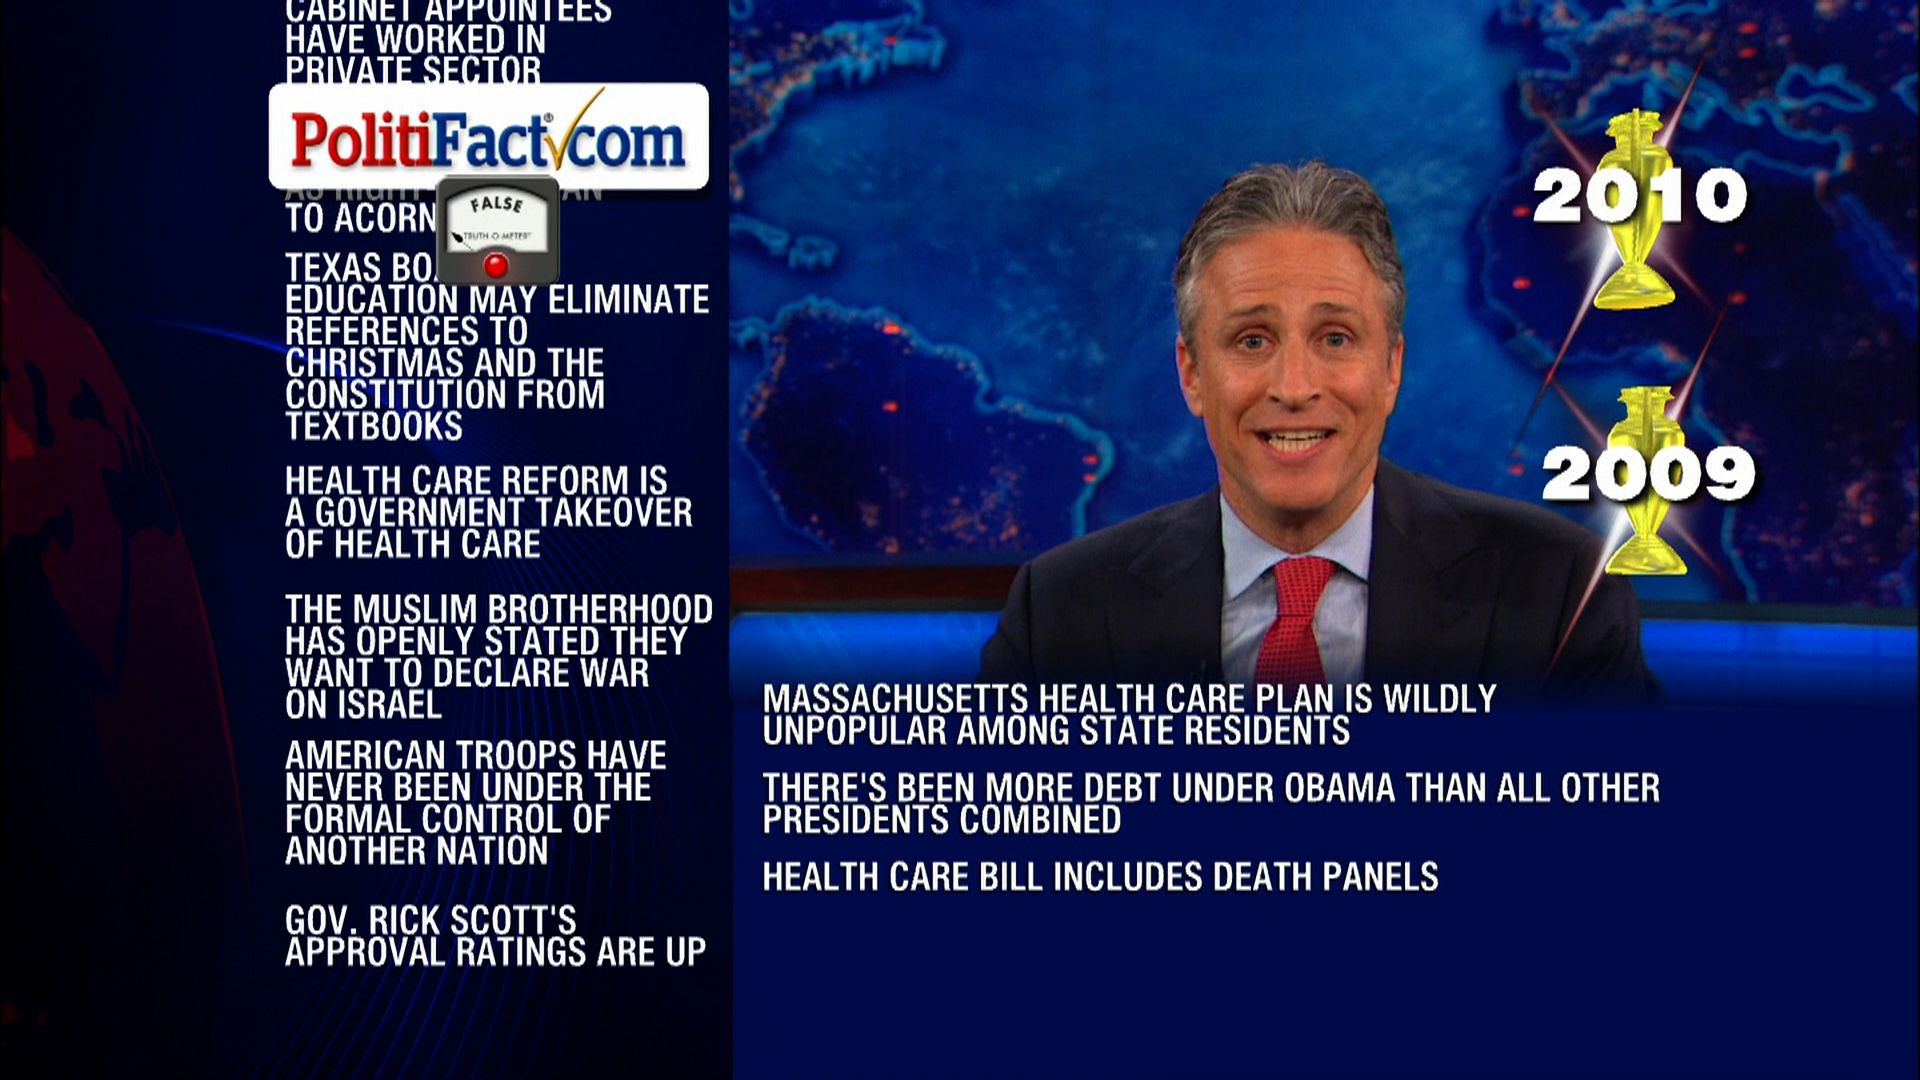 Fox News\' False Statements - The Daily Show with Jon Stewart (Video ...